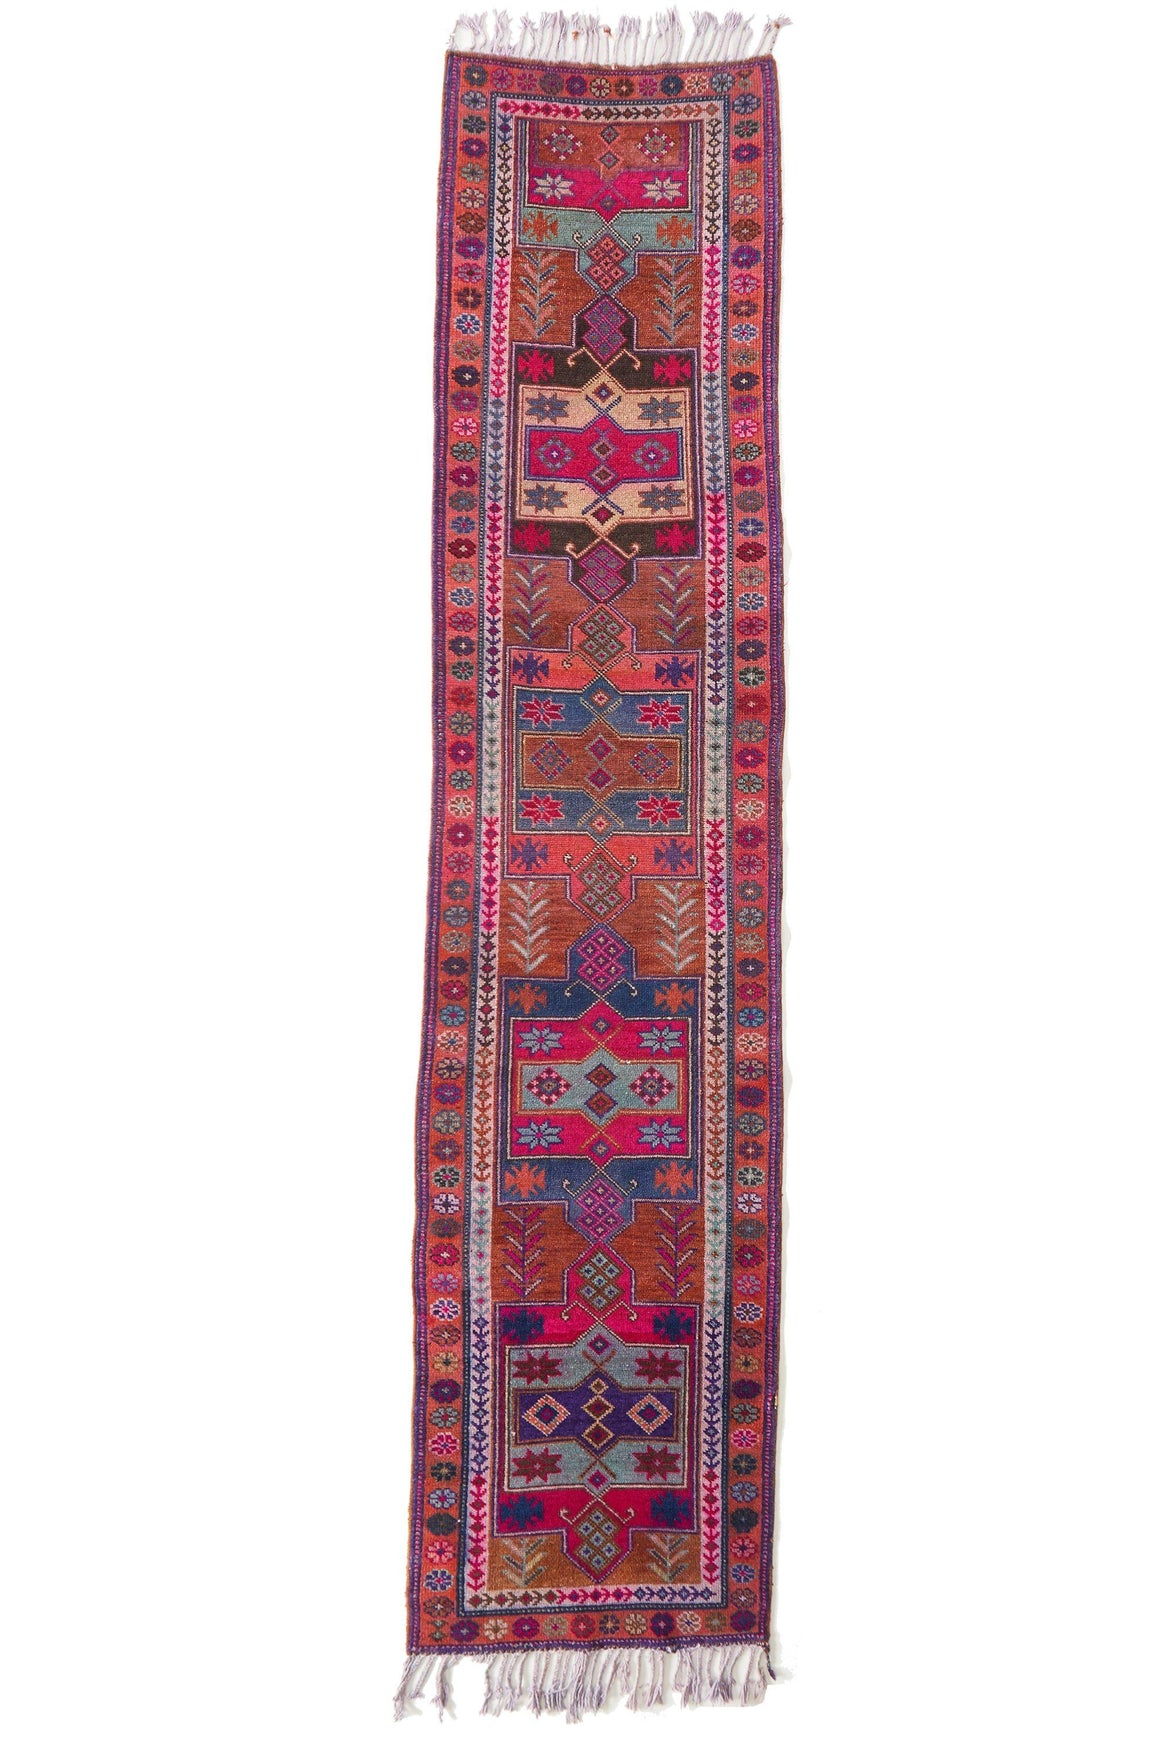 'Elysium' Vintage Turkish Runner - 3' x 14'2'' - Canary Lane - Curated Textiles